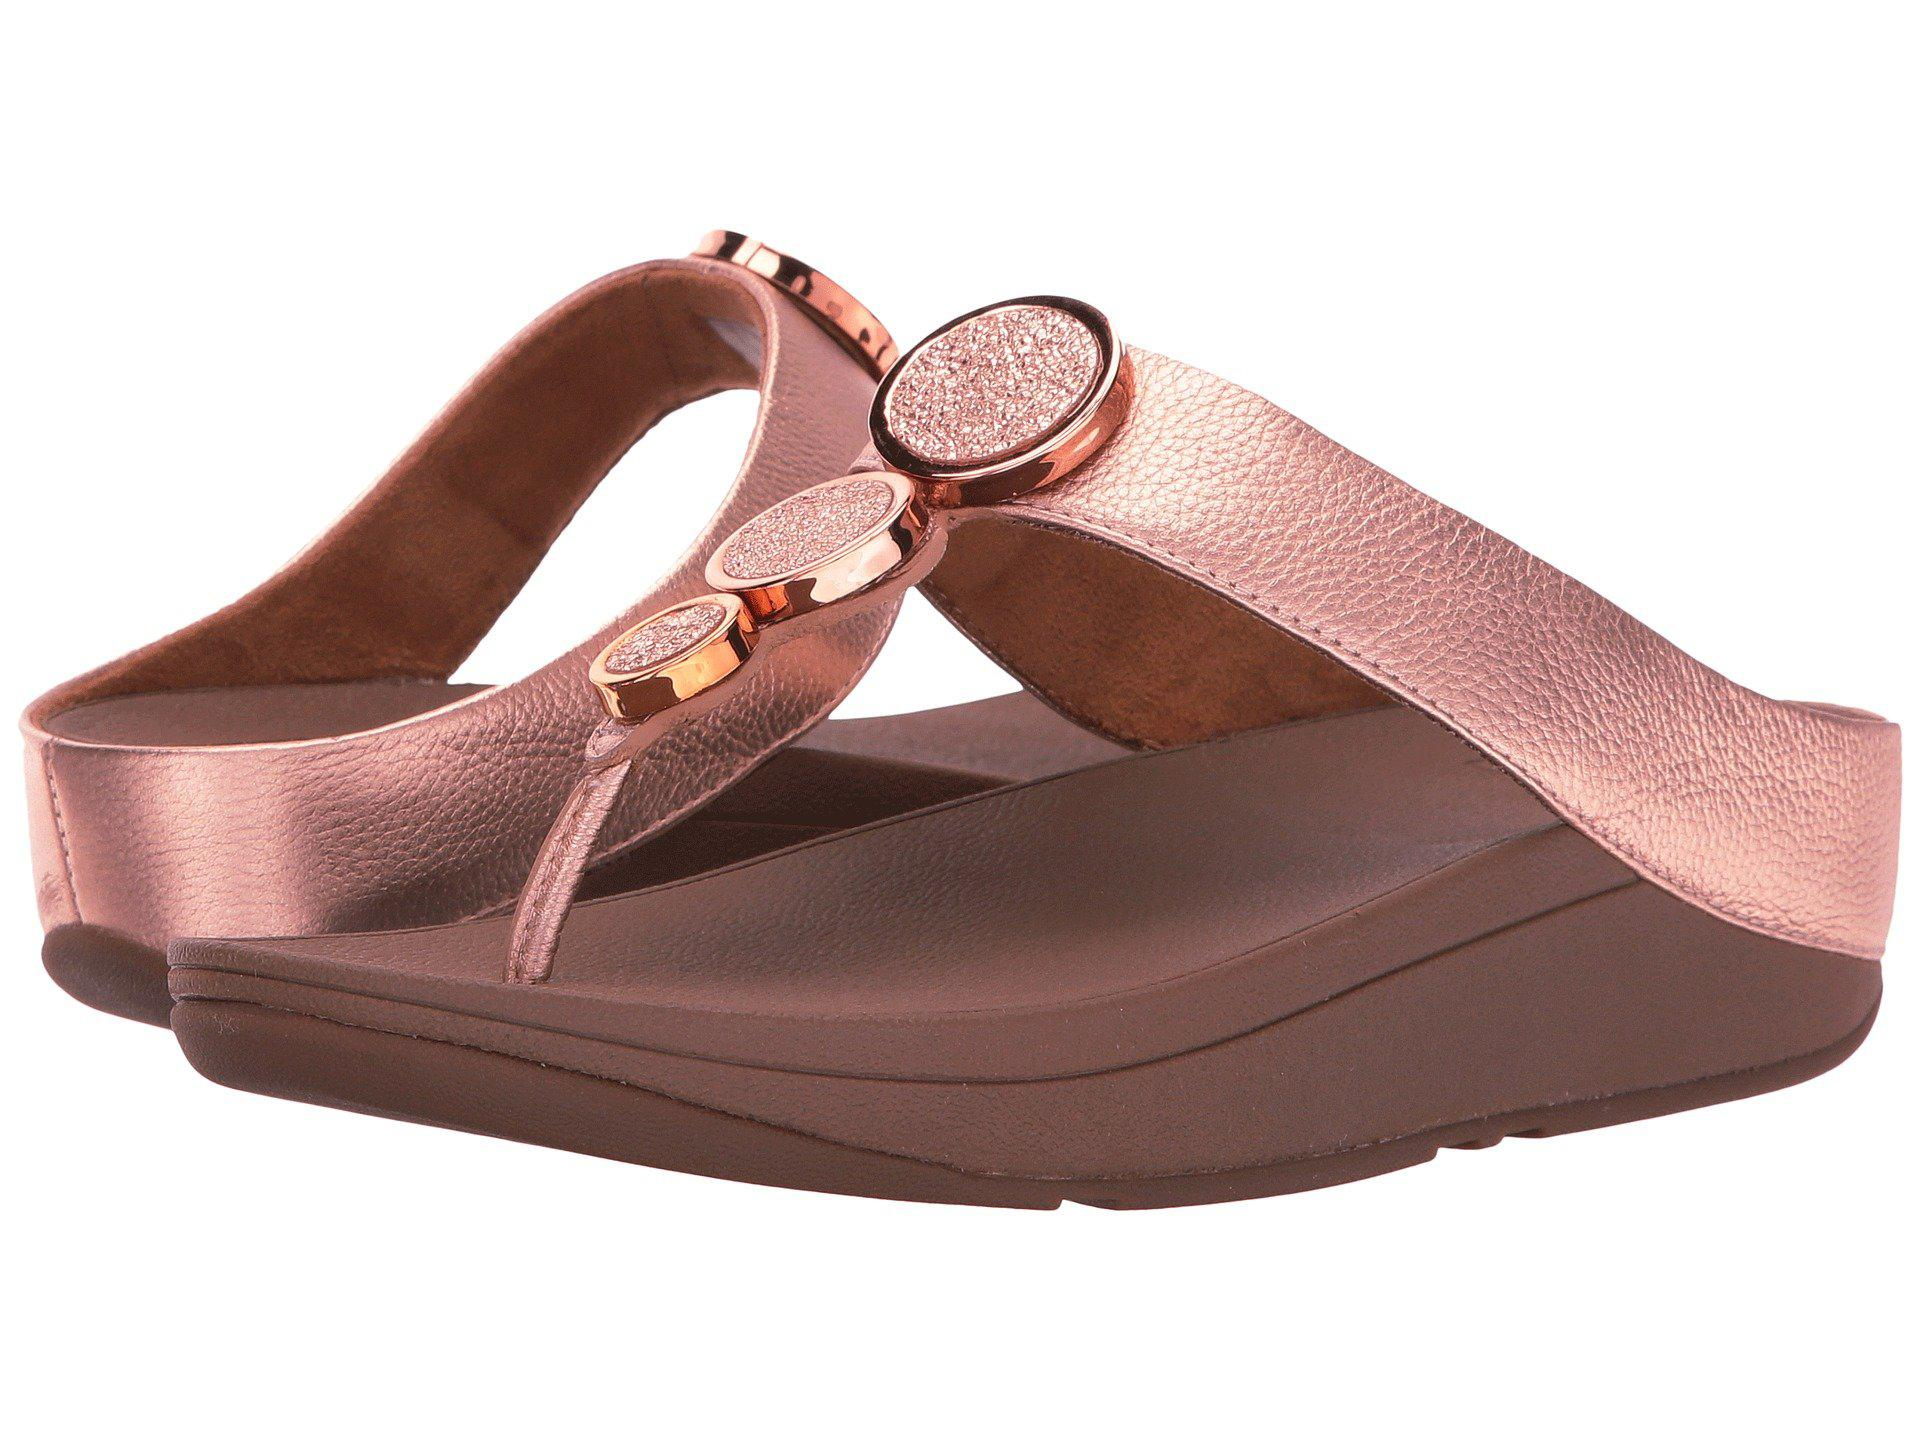 941e7834bd7f Gallery. Previously sold at  Zappos · Women s Thong Sandals Women s Wedding  Shoes ...